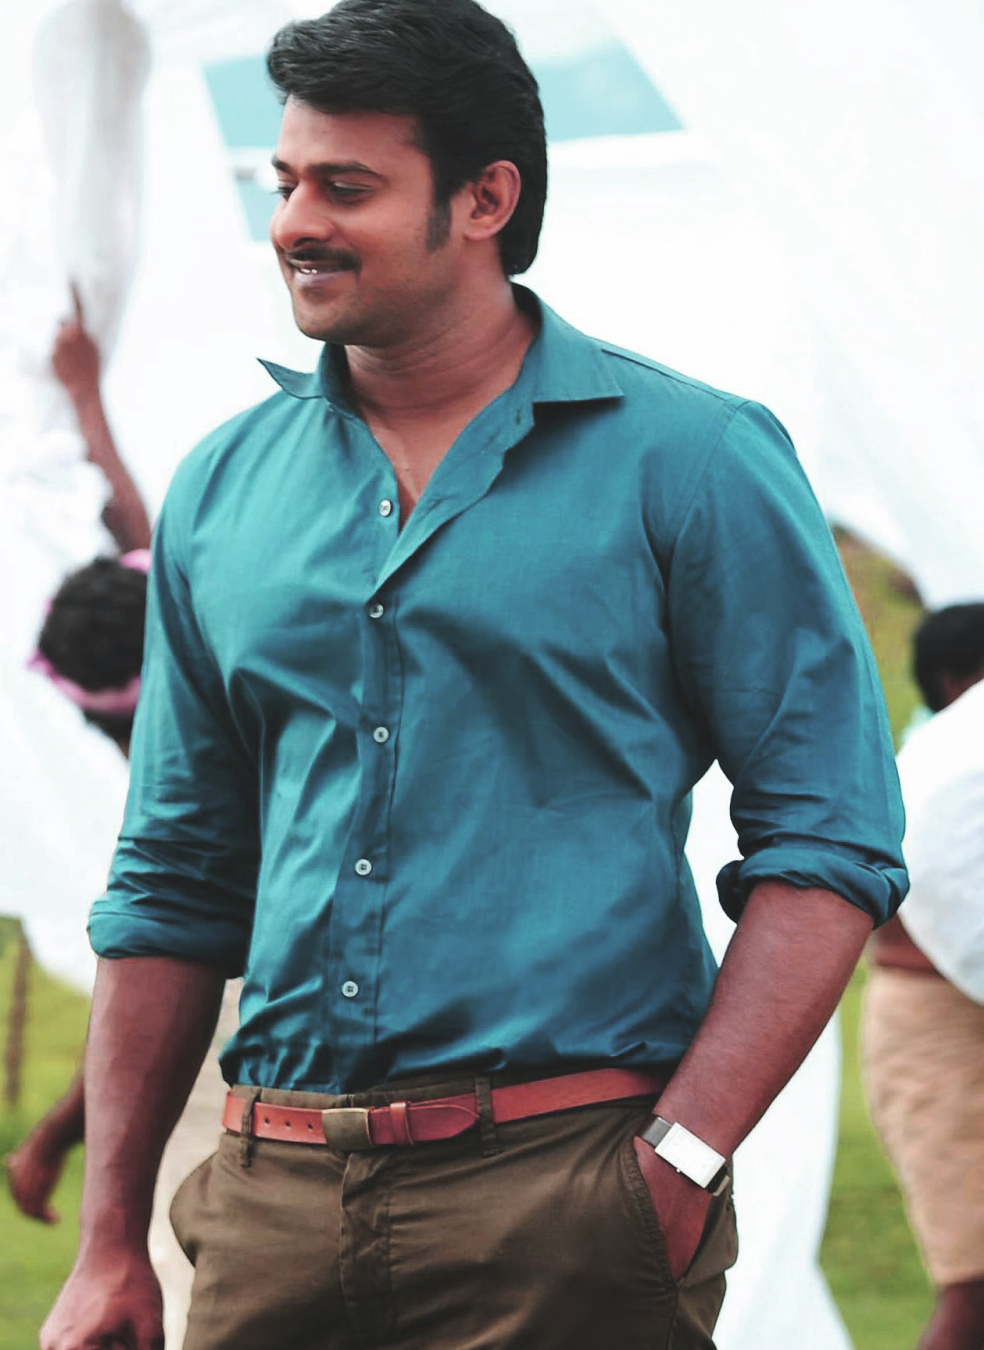 ACTION HERO PRABHAS IMAGES PICS PICTURES FREE HD